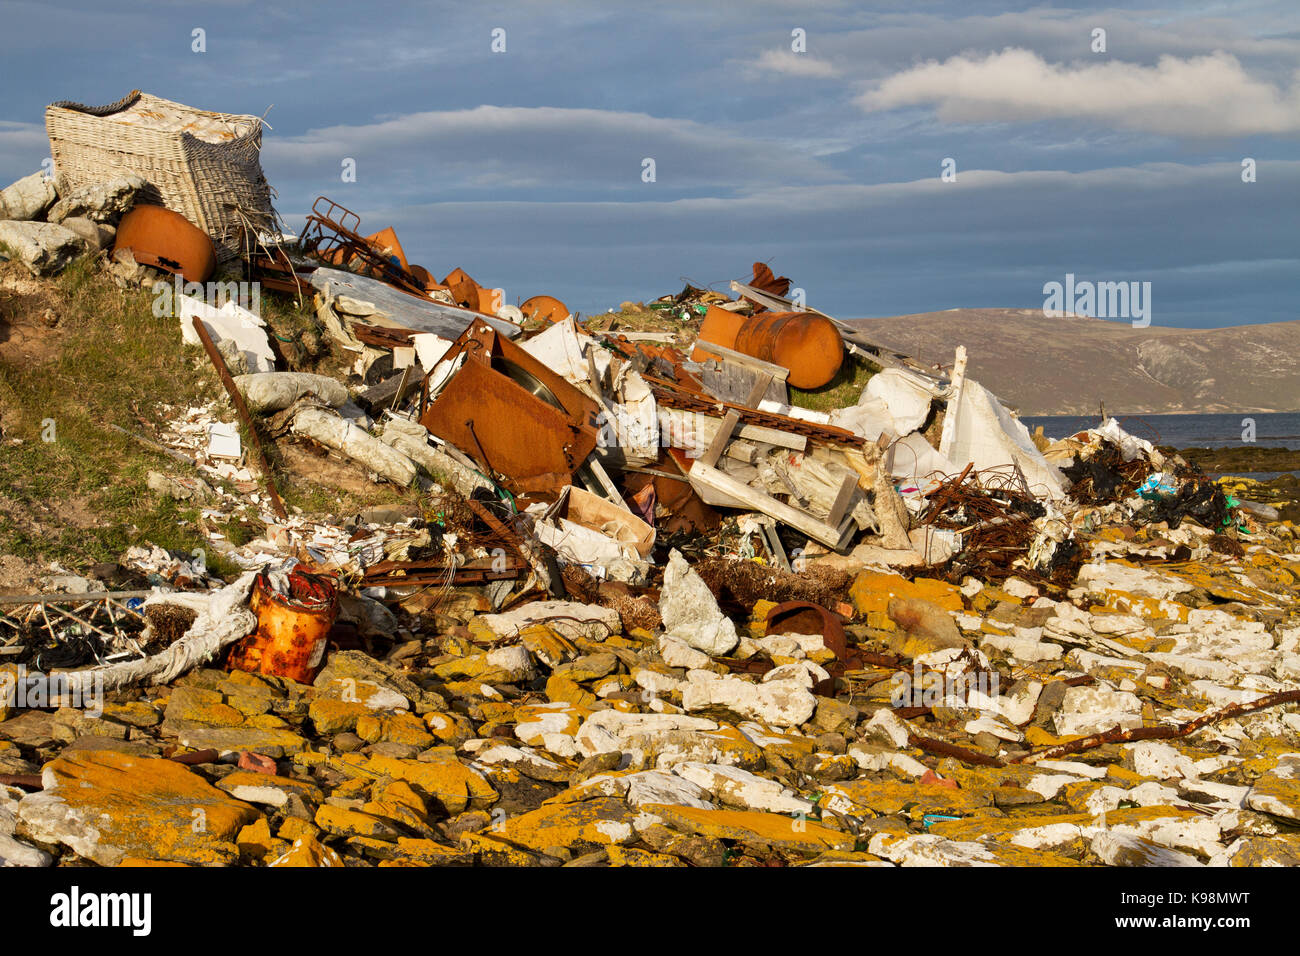 Severe pollution - Stock Image